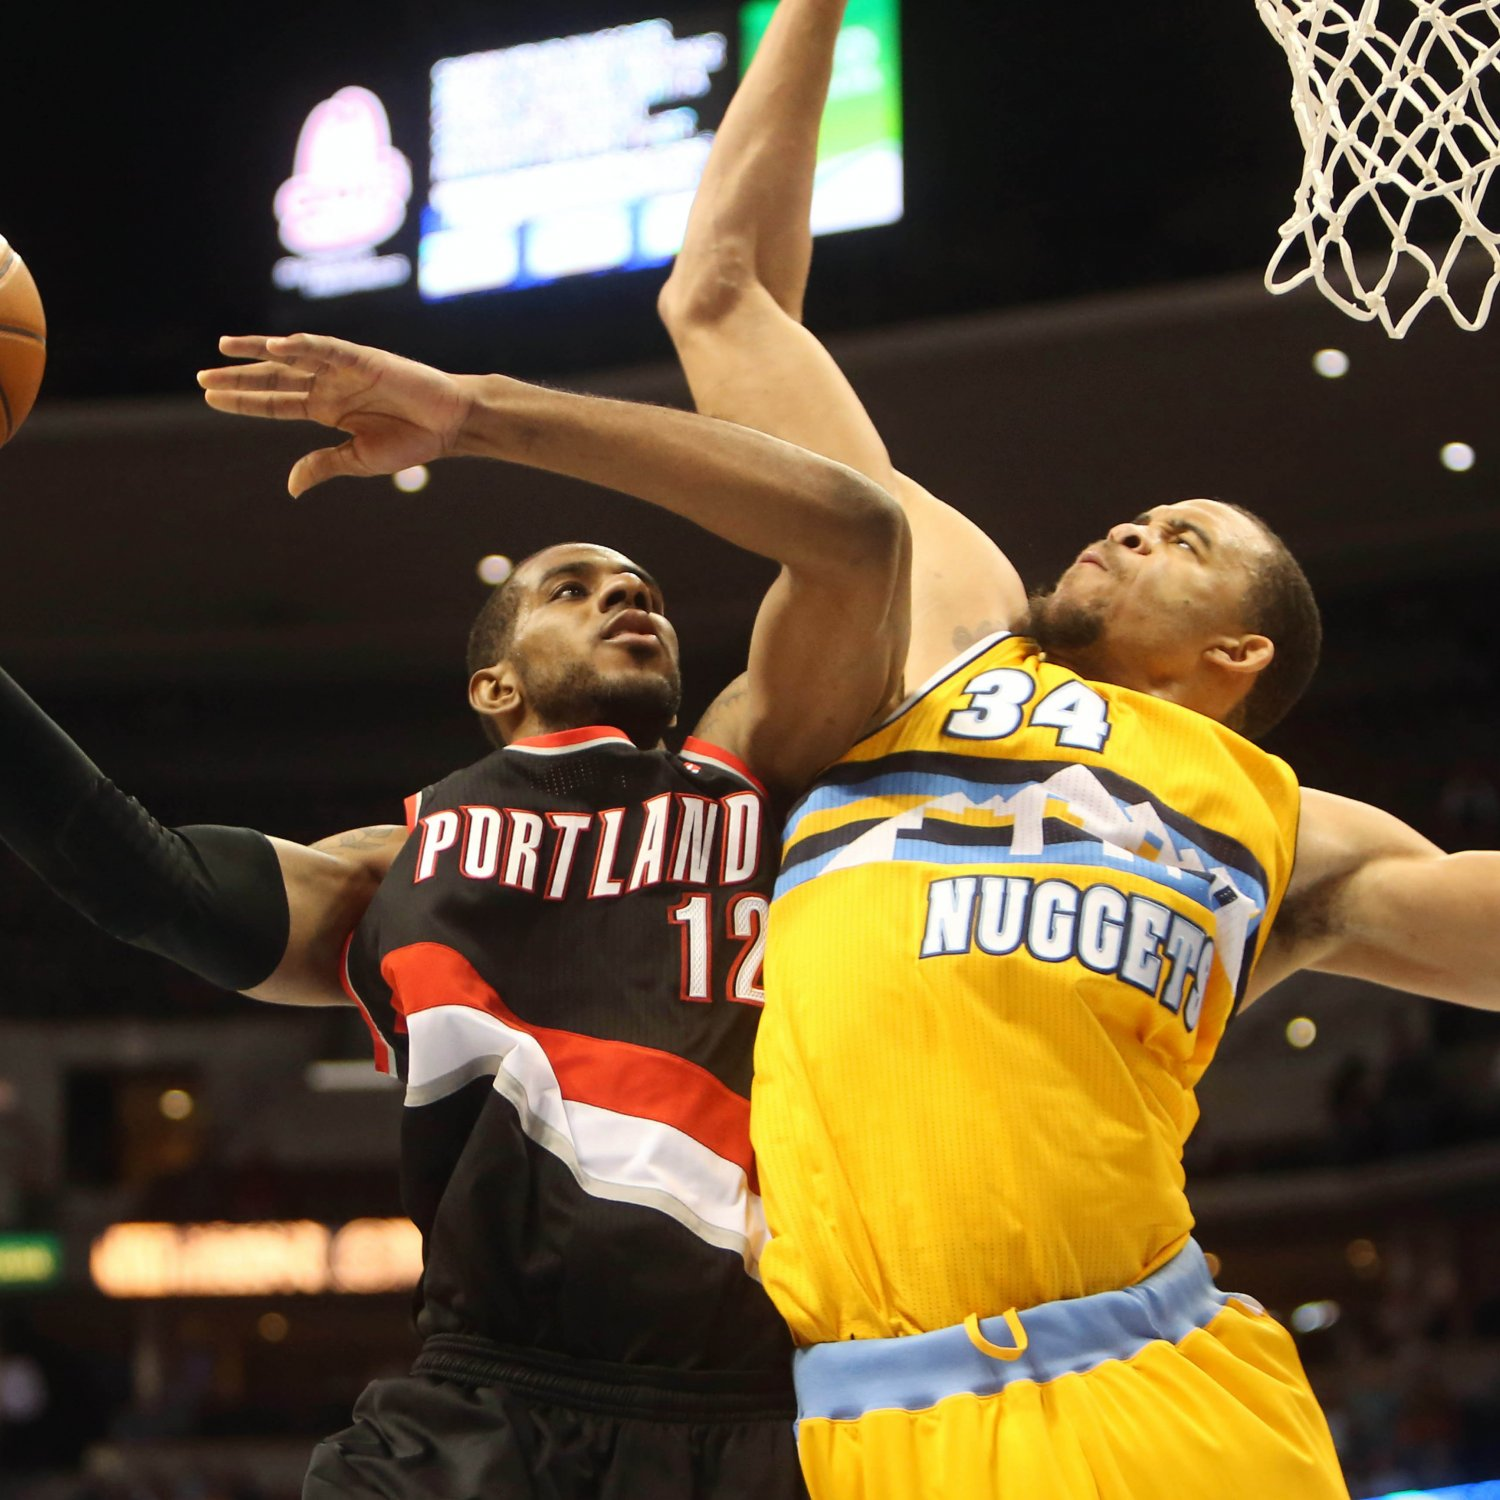 Nba Picks Nuggets And Lakers Game 7 Odds And Betting: NBA Picks: Denver Nuggets Vs. Portland Trail Blazers